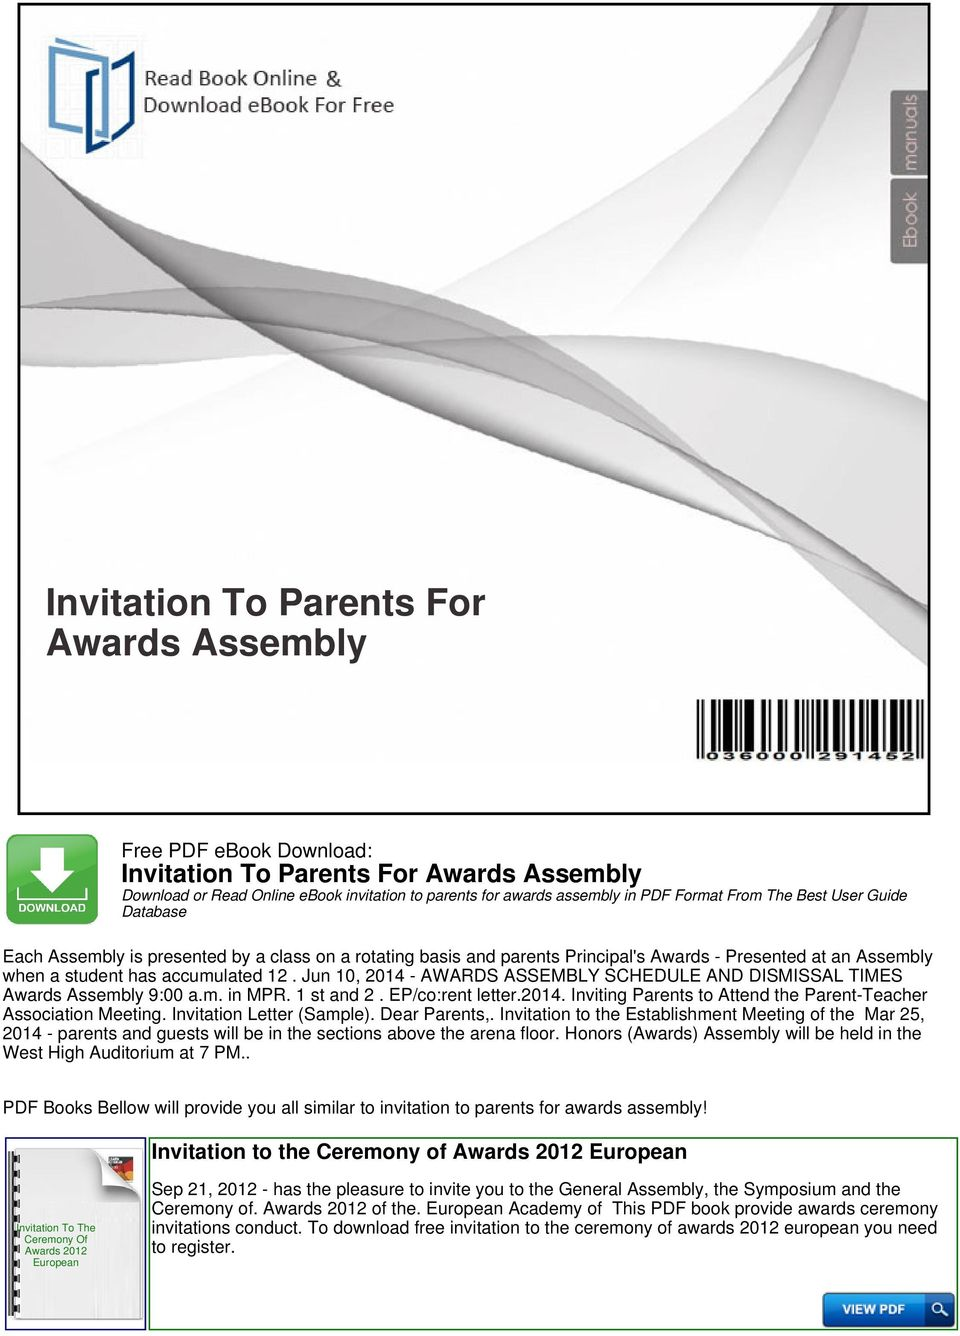 Invitation to parents for awards assembly pdf 1 st and 2 epcorent letter2014 inviting to stopboris Image collections